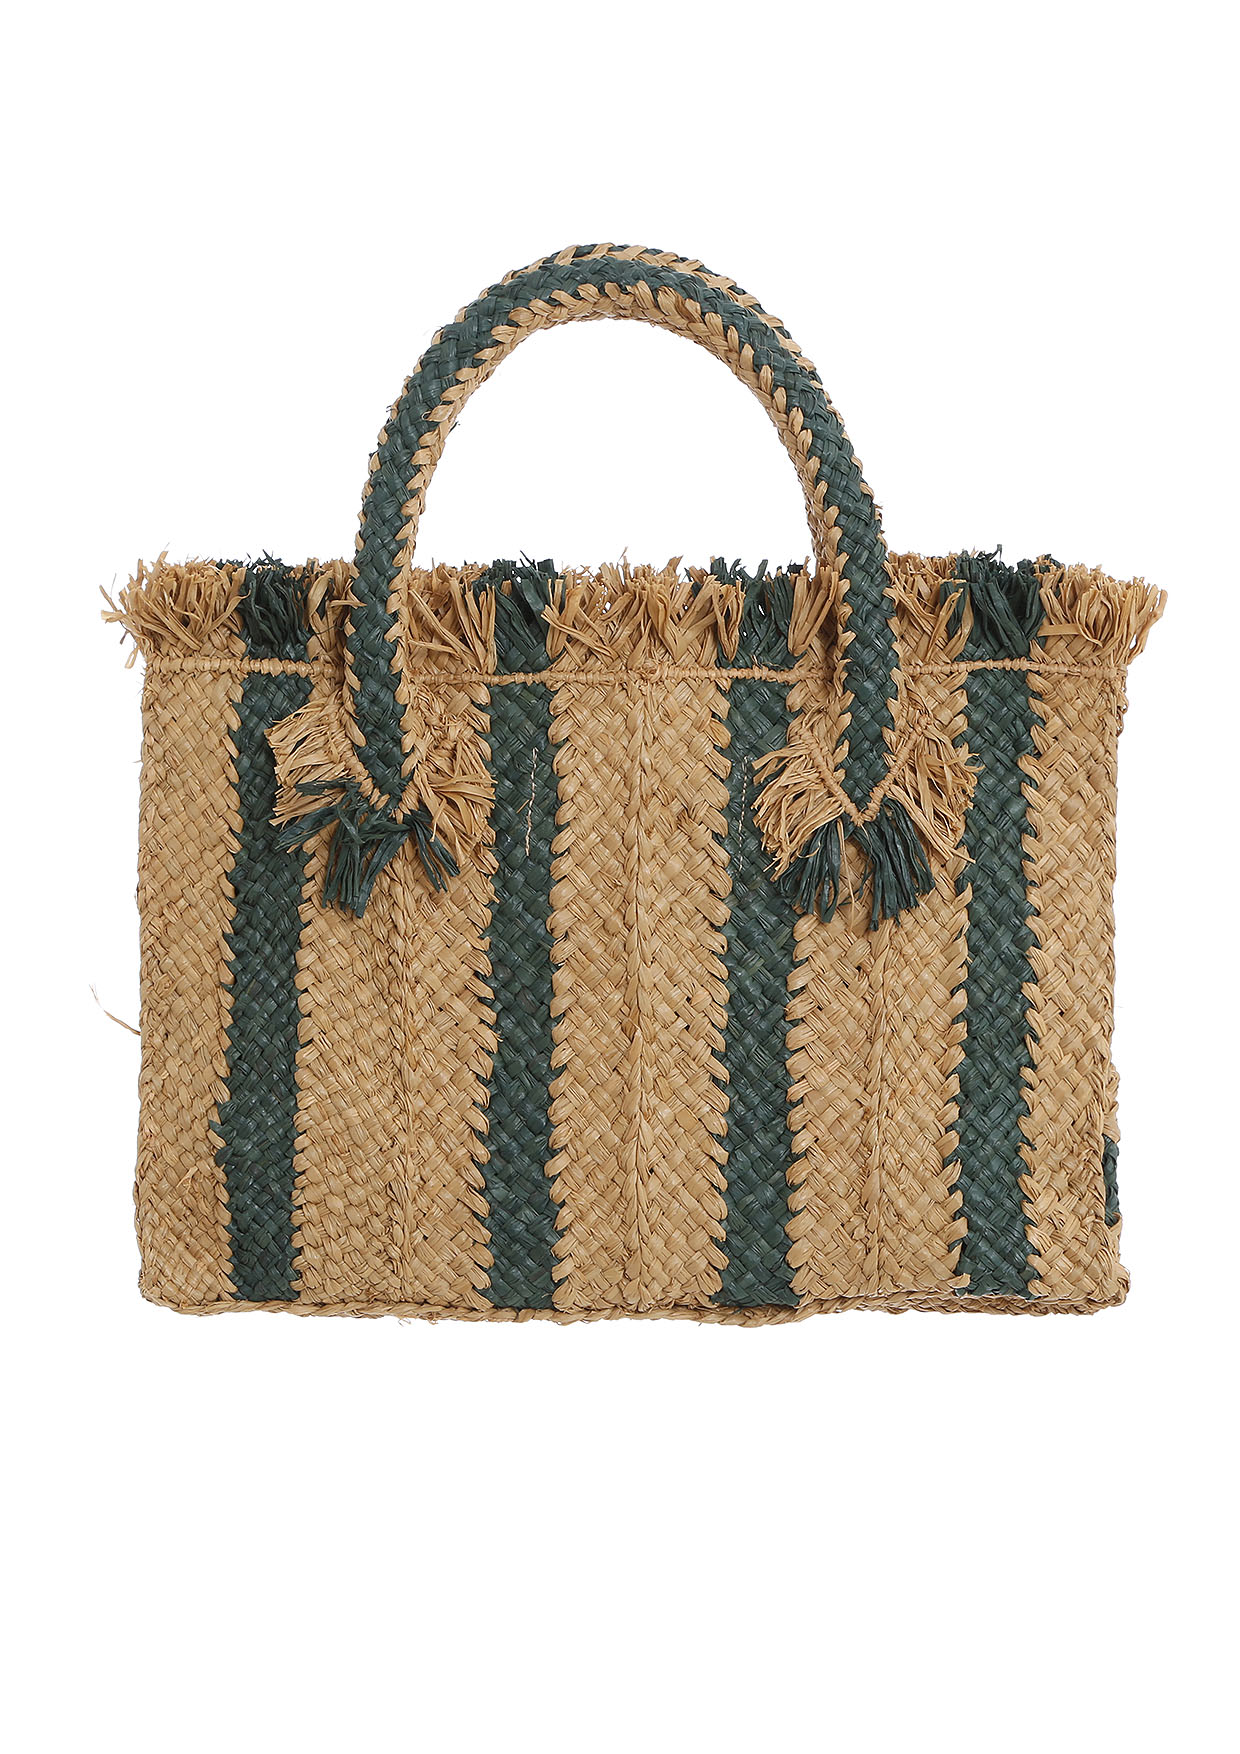 Georges soubique raffia bag - 109€ NOW 76€